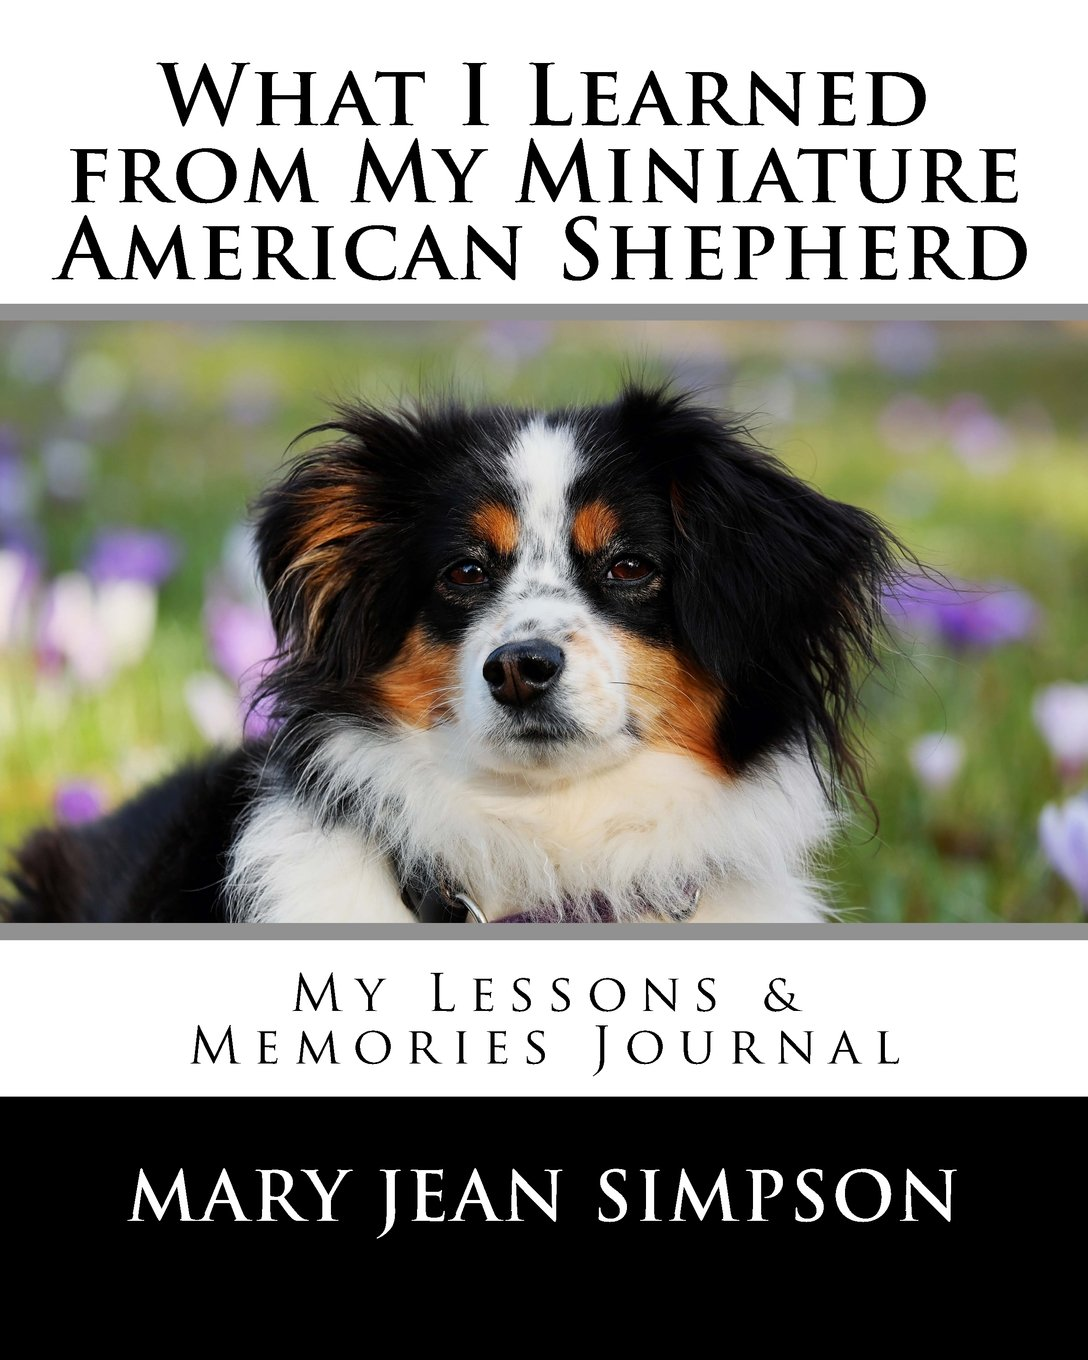 Download What I Learned from My Miniature American Shepherd: My Lessons & Memories Journal PDF